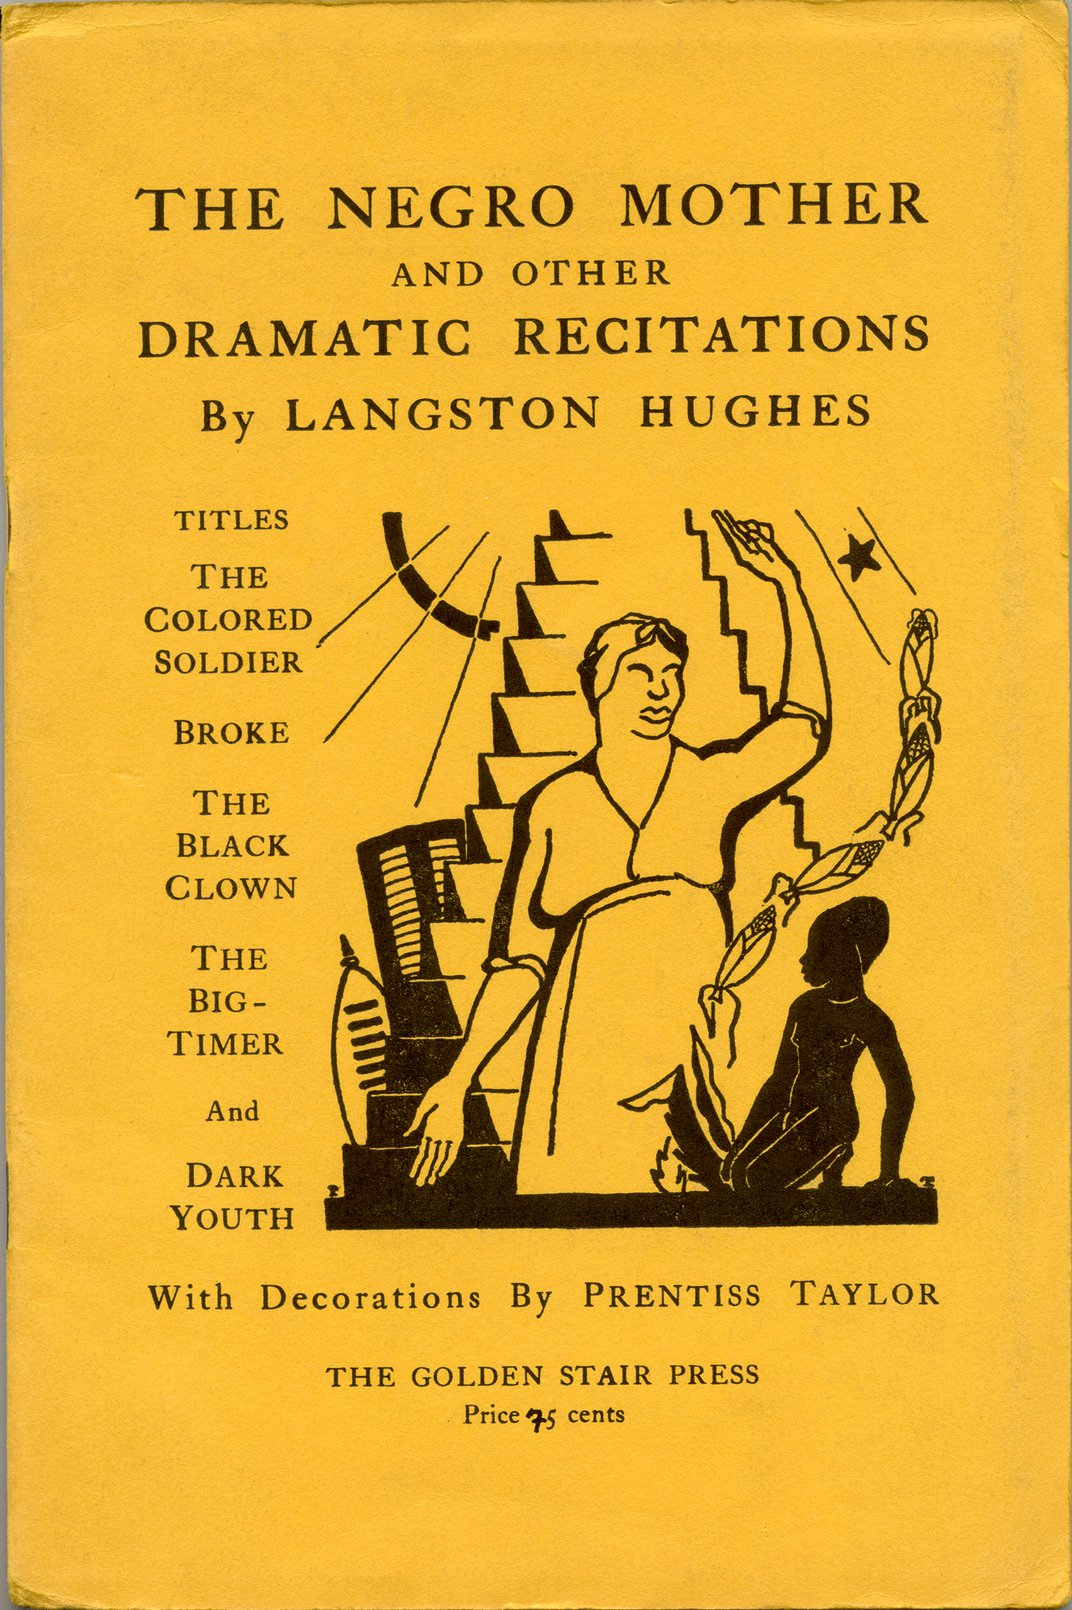 Book of poetry by Langston Hughes